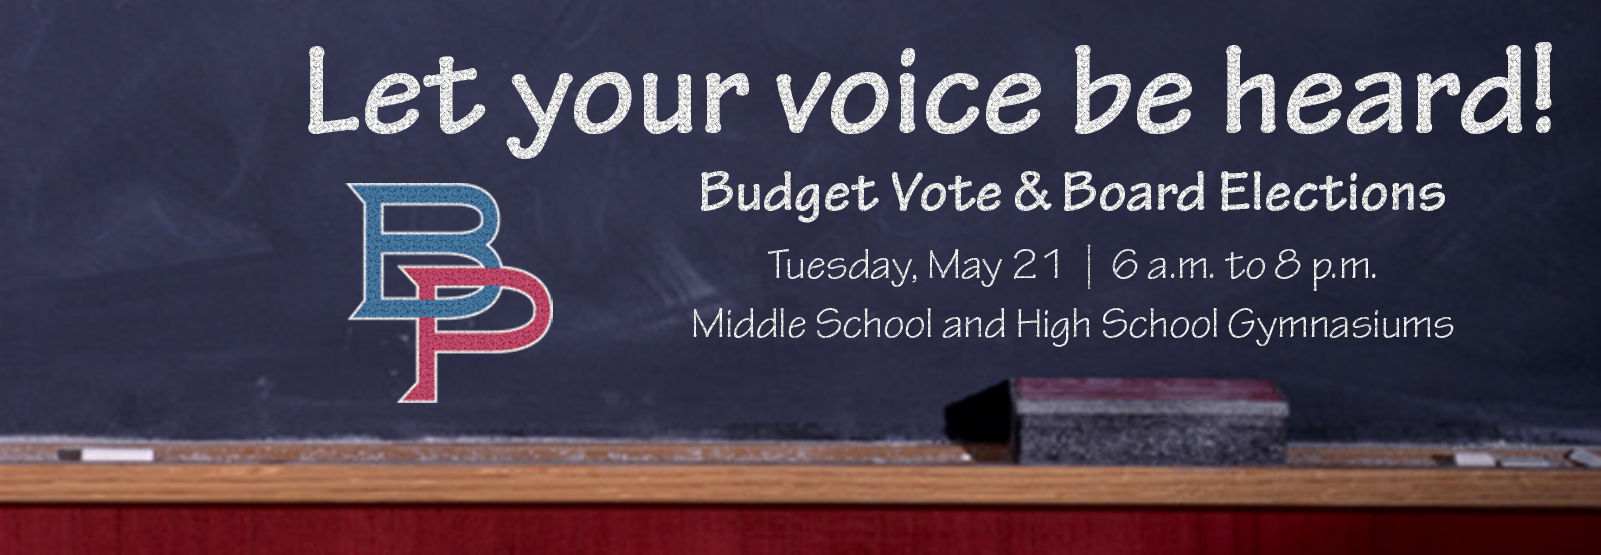 Let your voice be heard! Budget vote and board elections, Tuesday, May 21, 6 a.m.-8 p.m. Middle School and High School gymnasiums